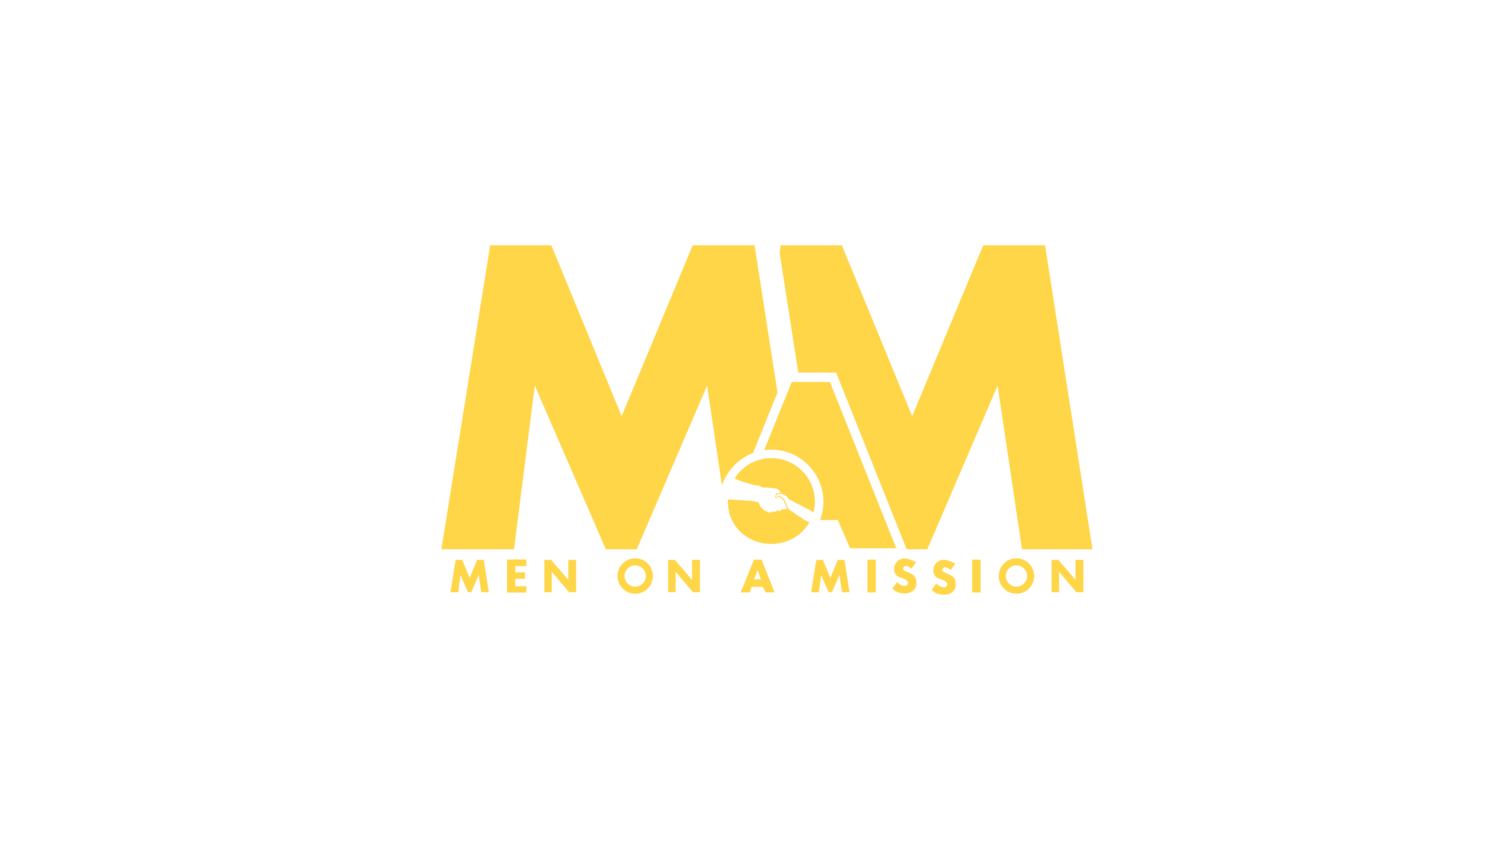 MEN ON A MISSION